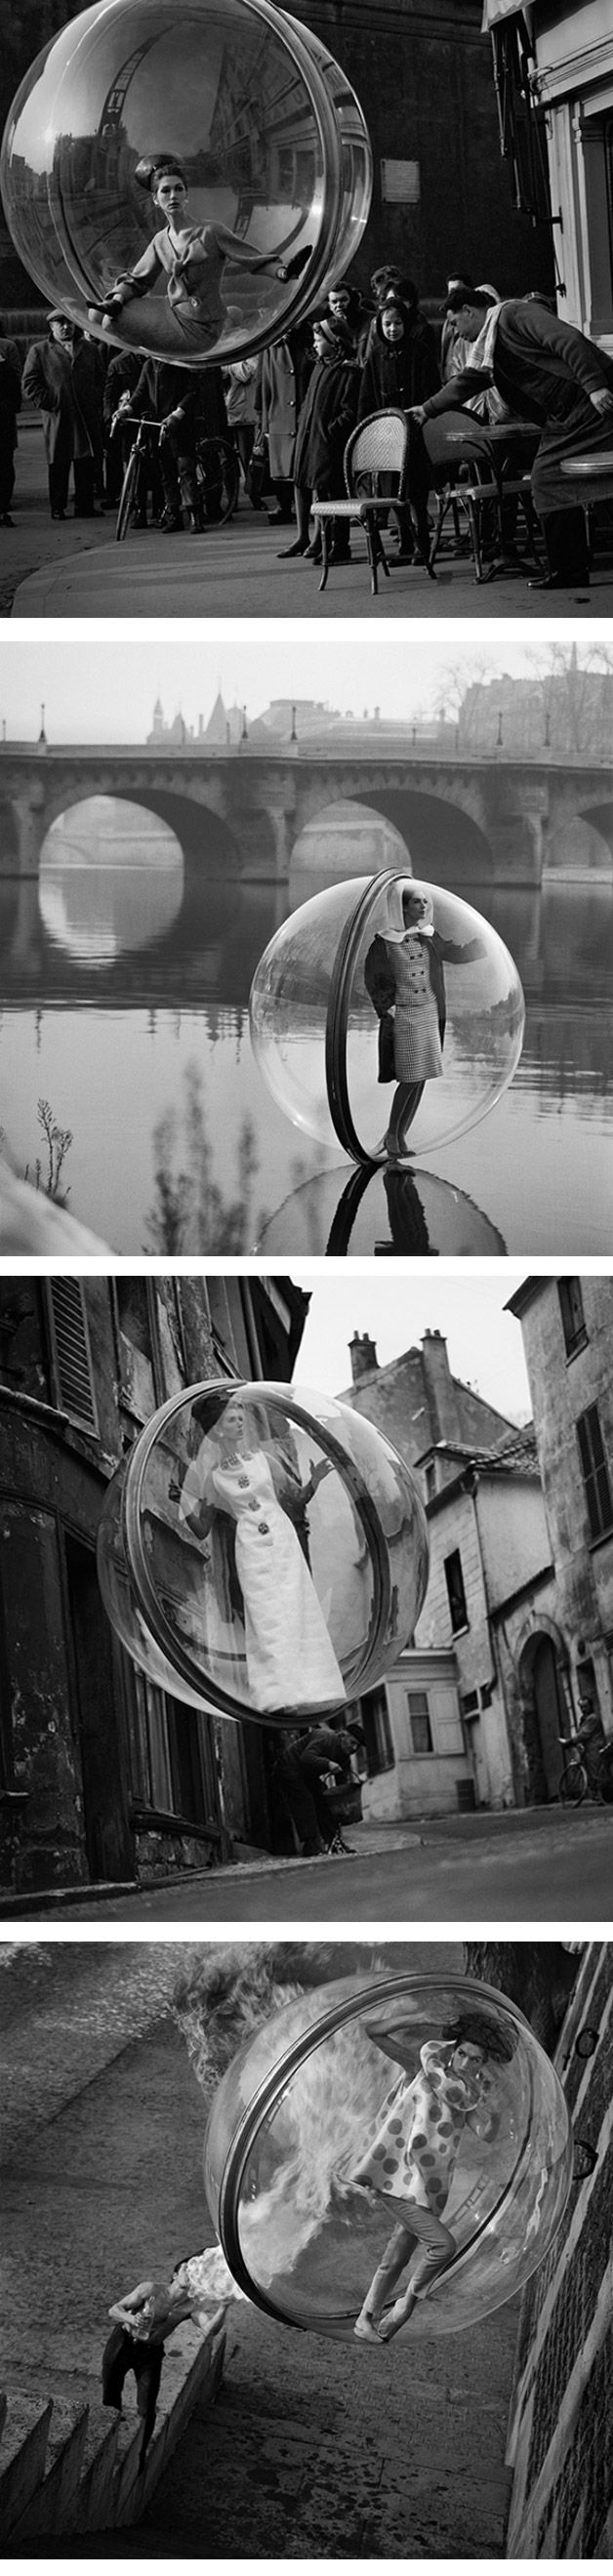 Pictures of a woman inside of a bubble in the 60's - no photshop